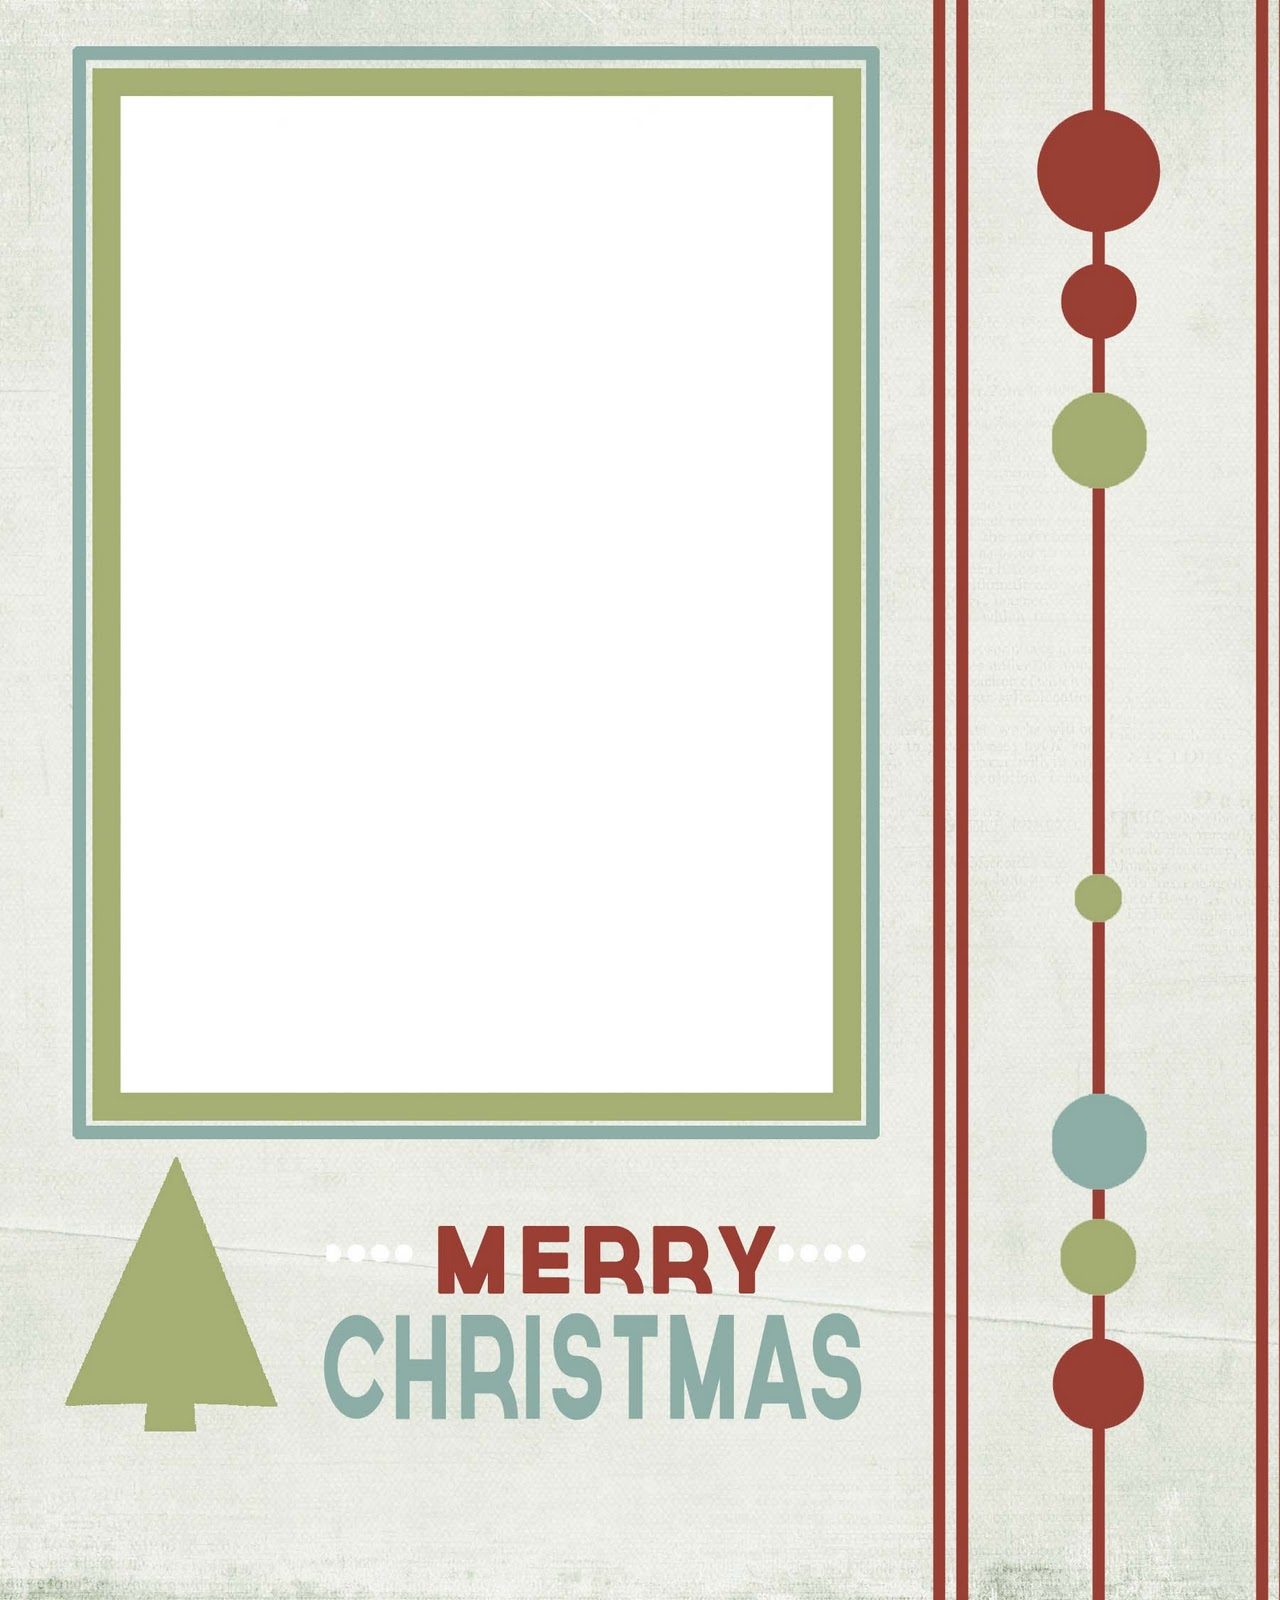 Decisive image with printable christmas templates